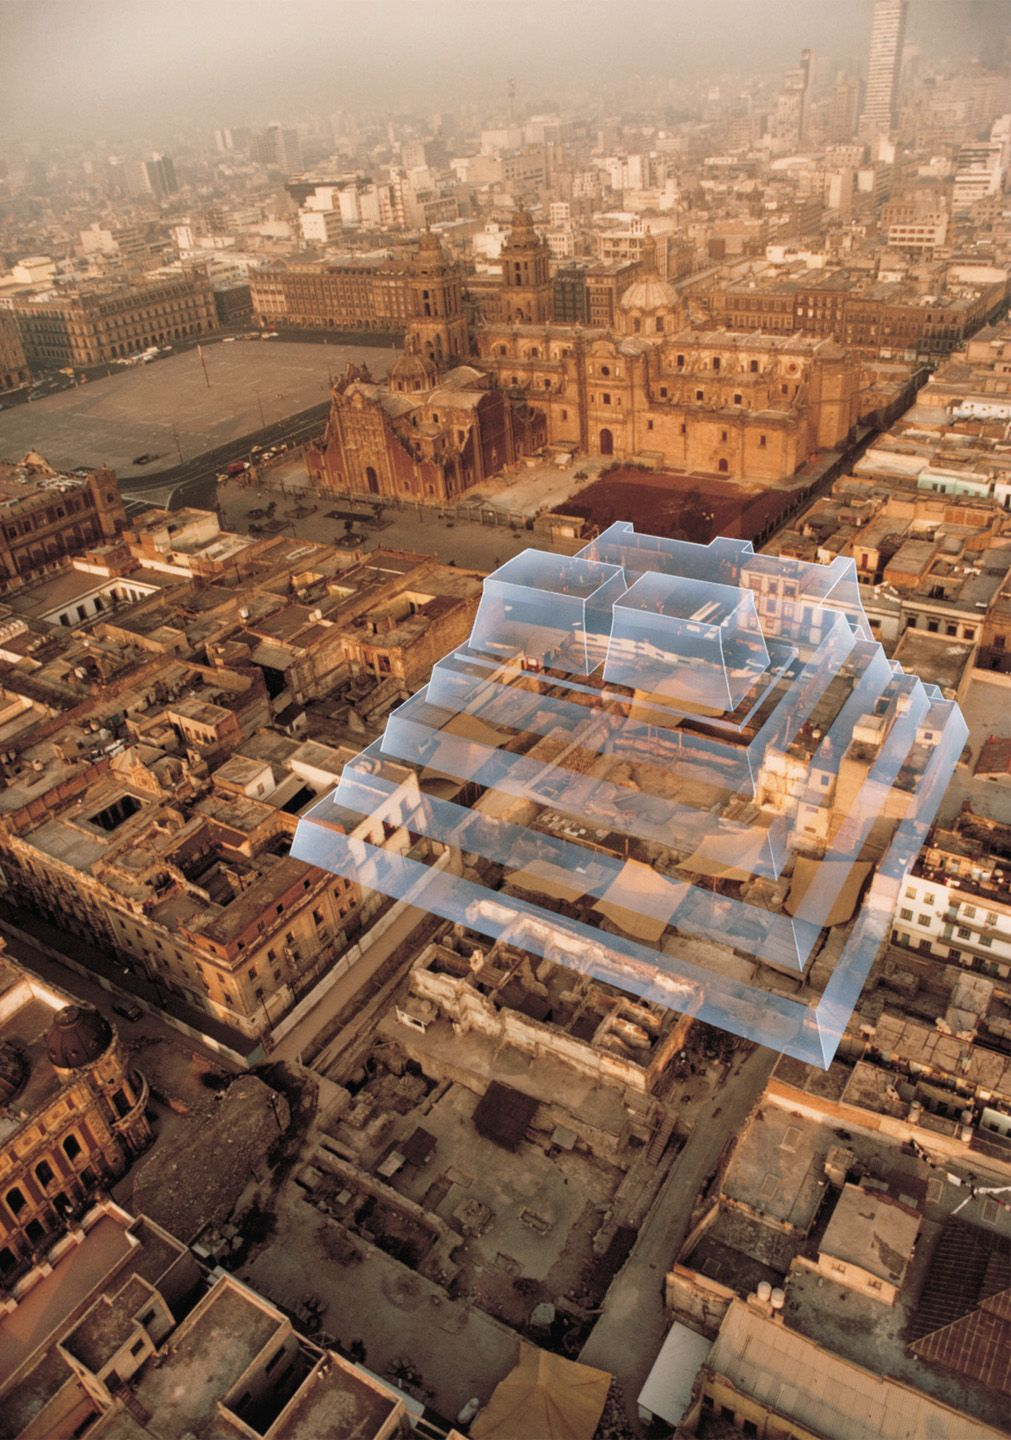 4 13 Aerial Photo Of The Ruins Of The Aztecs Templo Mayor Downtown Mexico City Mexico With Overlaid Cgi Reco Ancient Mexico Mexico History Mexican Travel